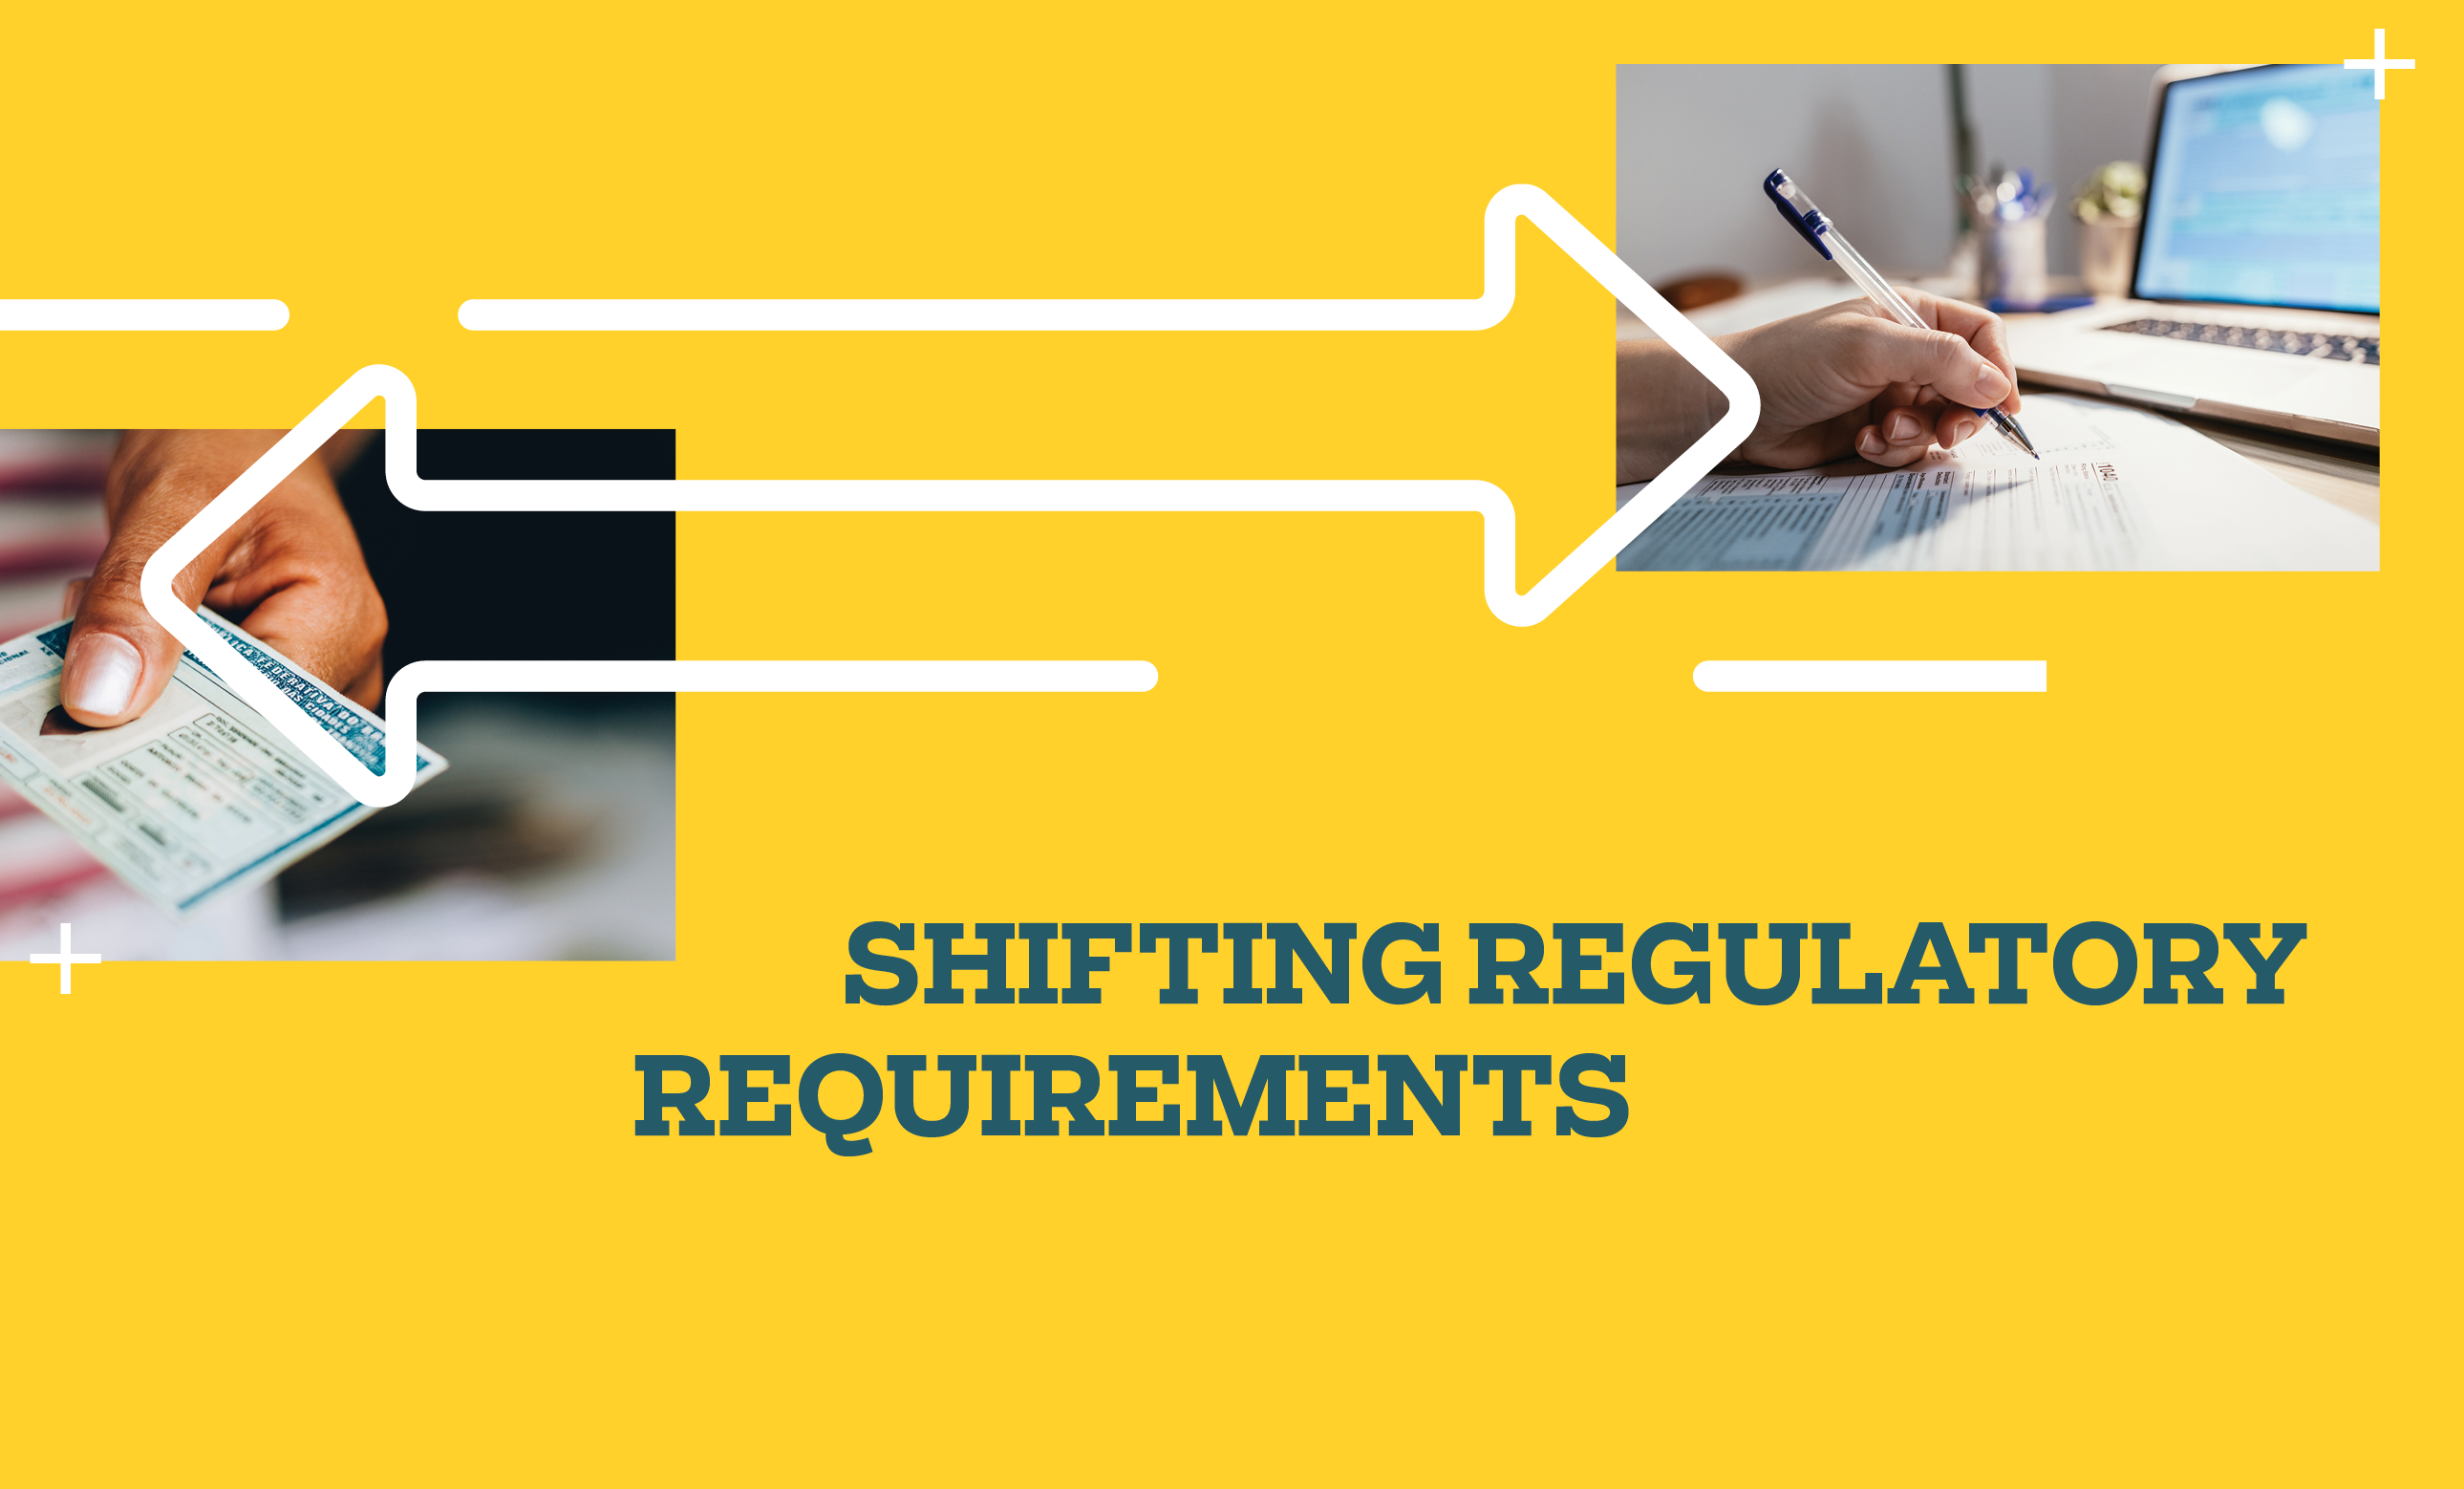 Shifting regulatory requirements - Temporary policy changes to Form I-9 and E-Verify now are in effect